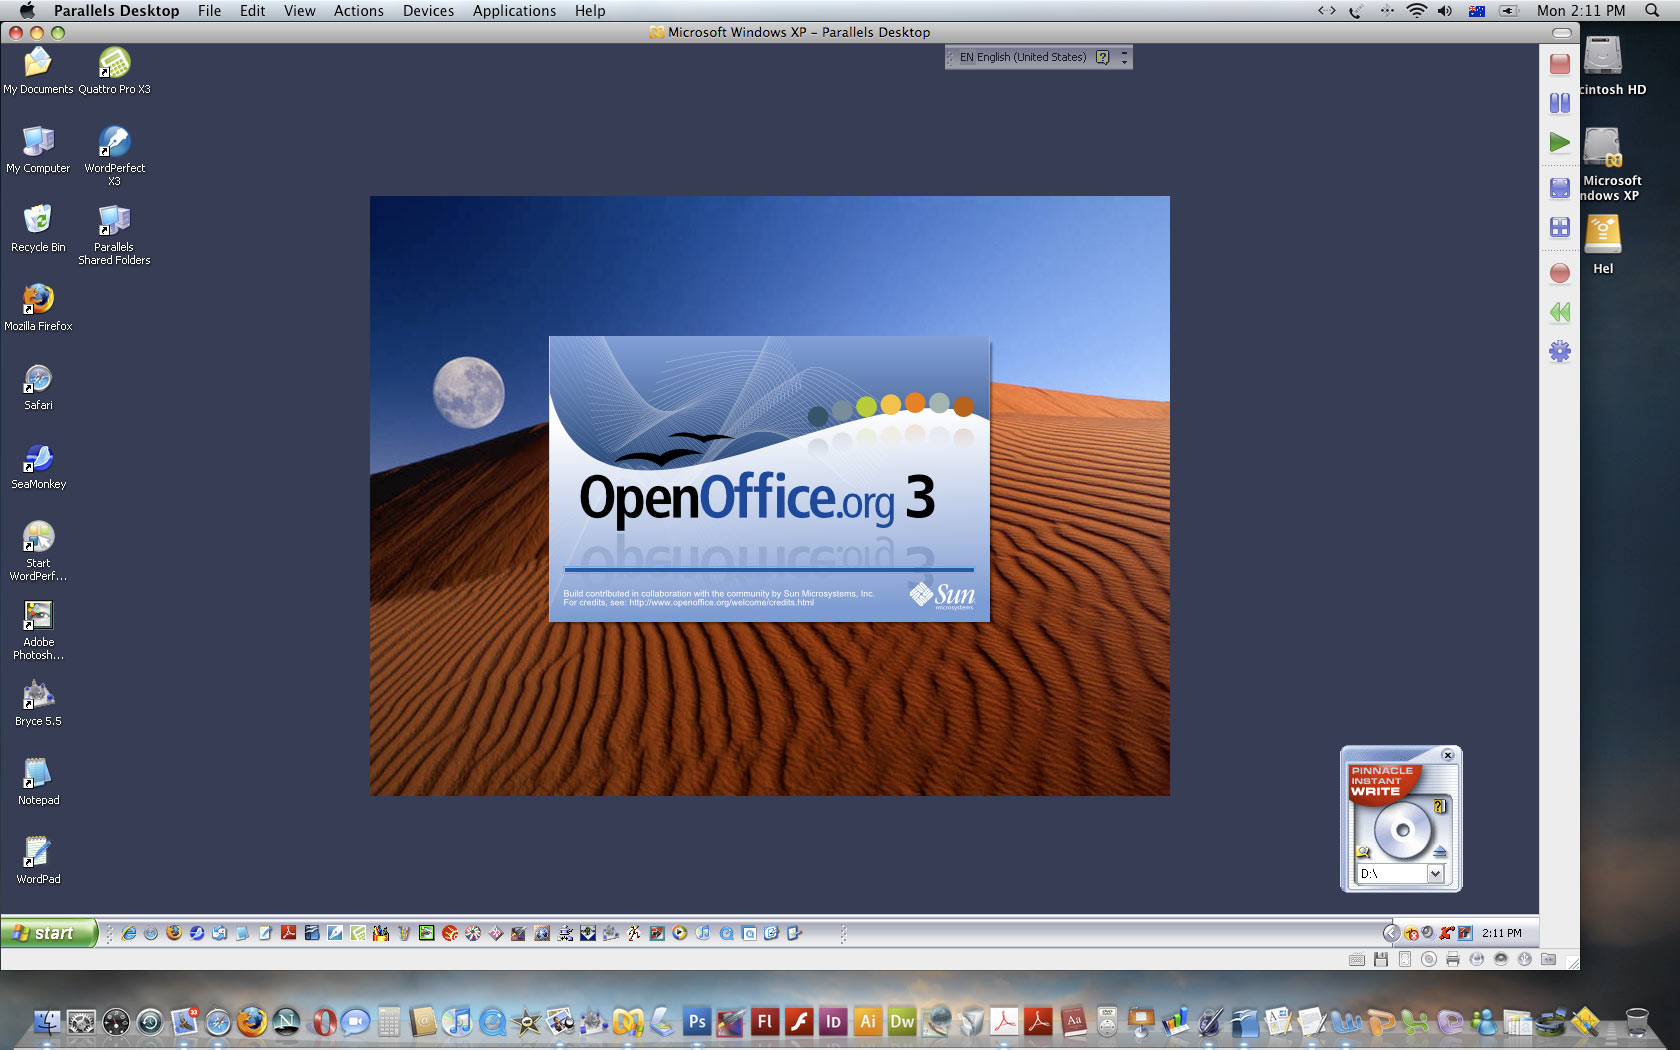 open office mac os x 10.4.11